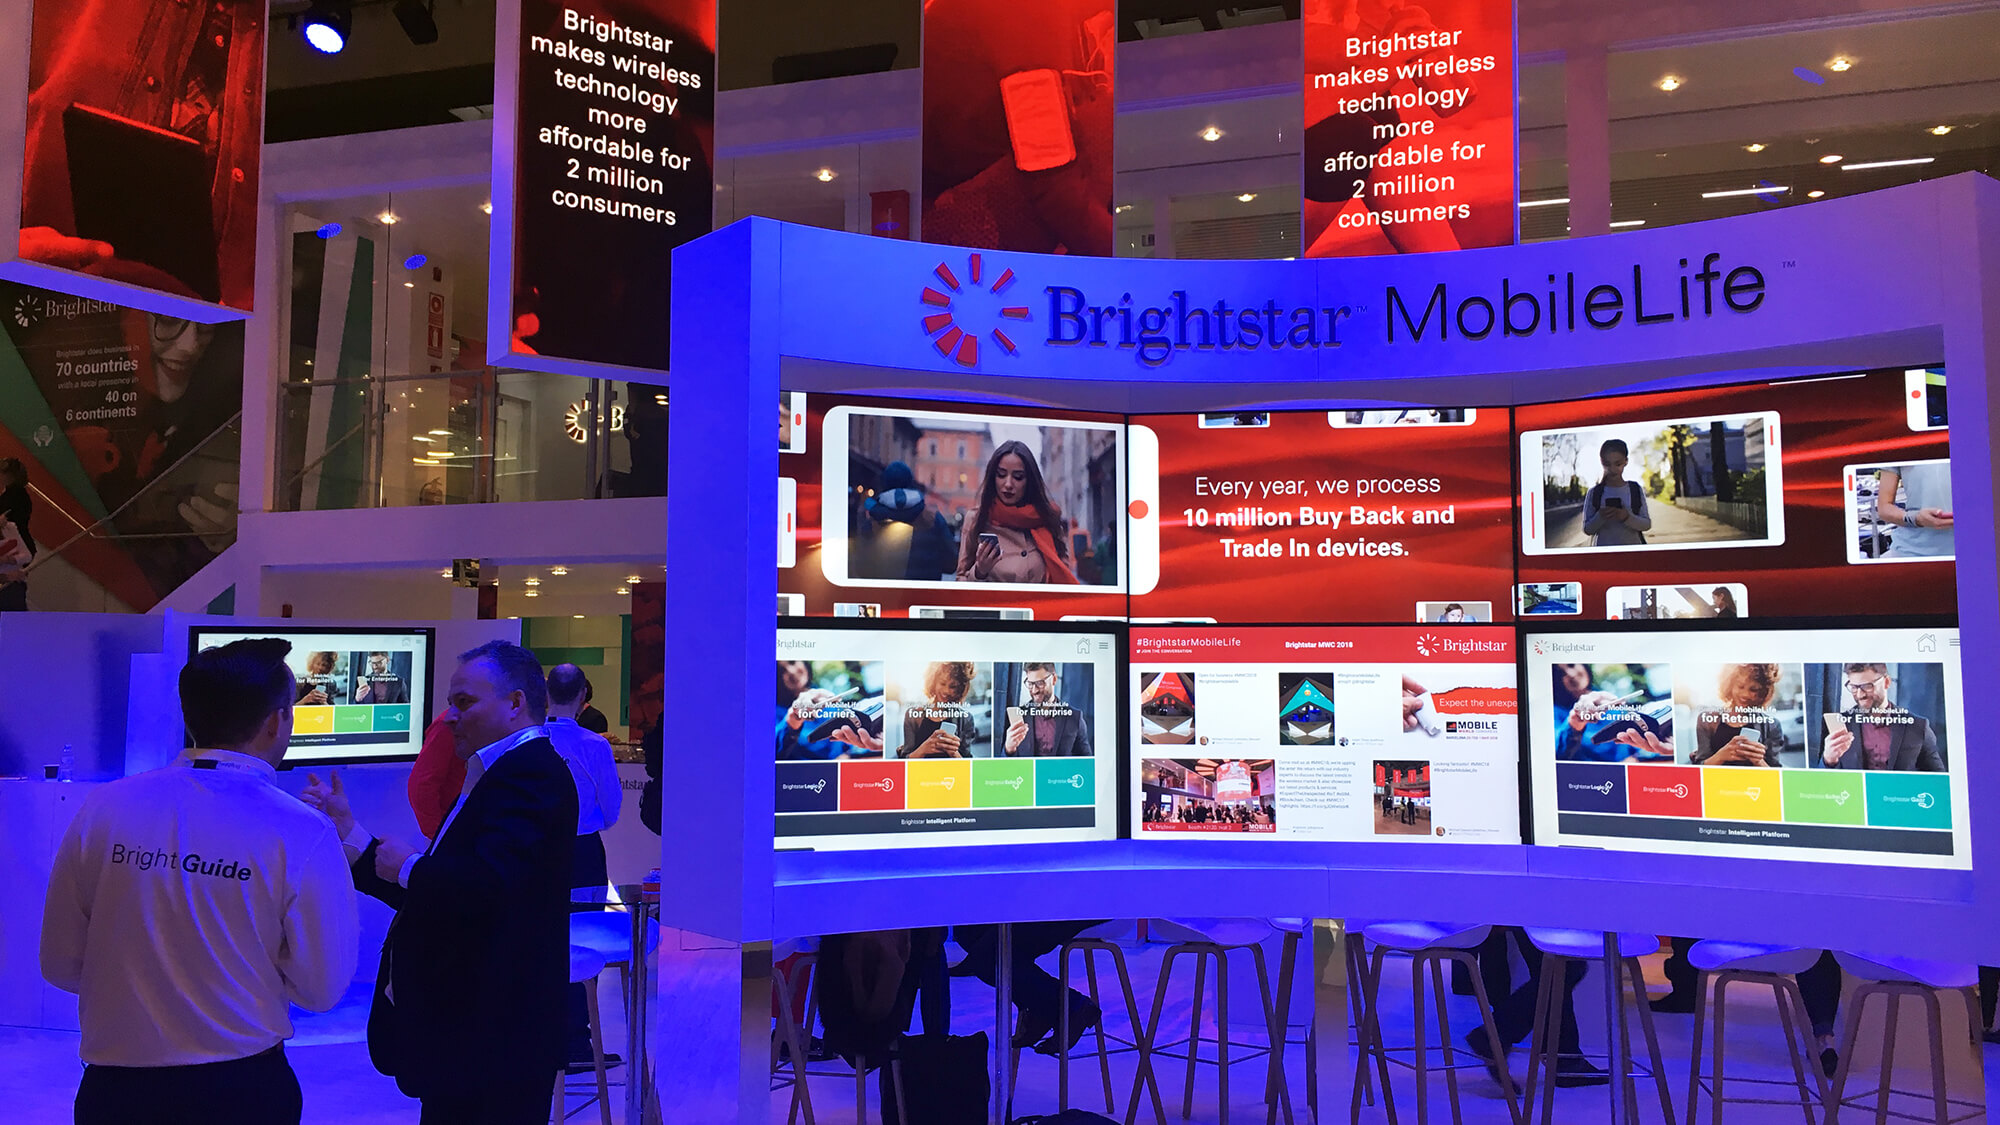 brightstar-mwc2018-mobilelife